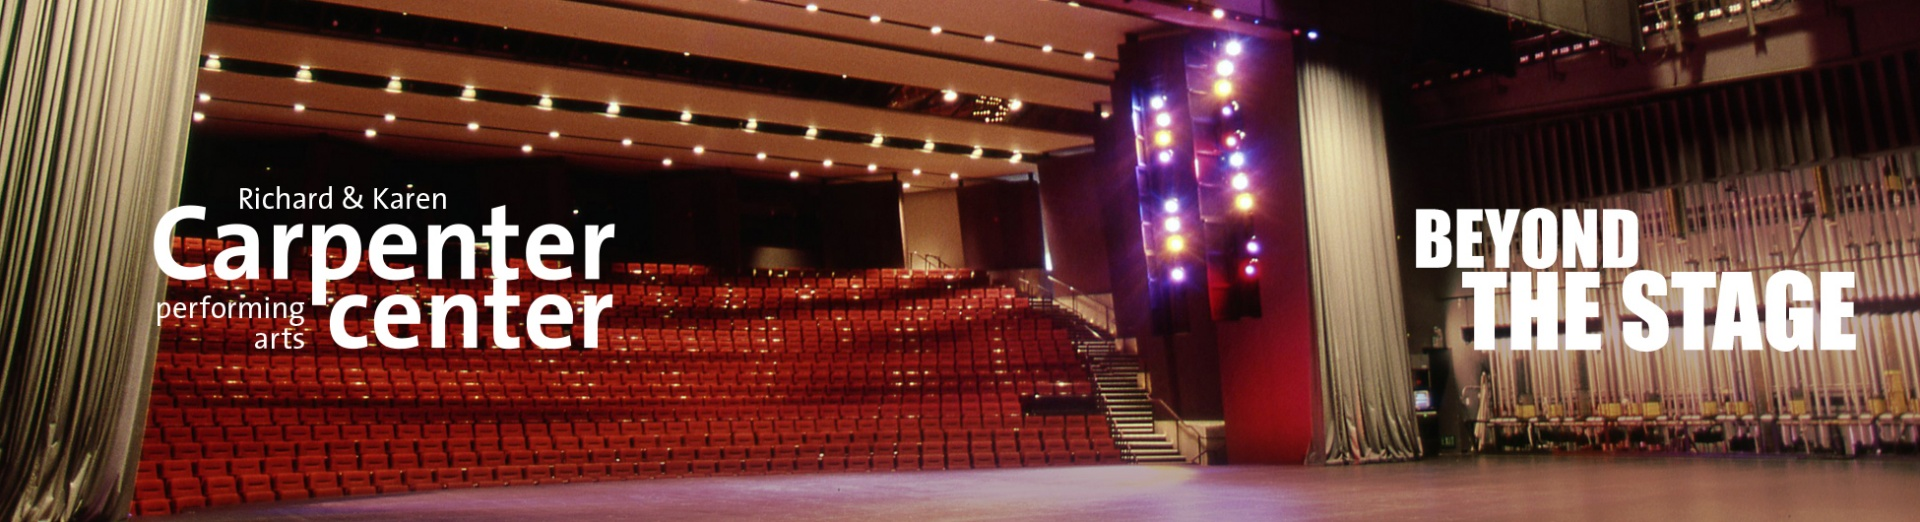 """A view of the Carpenter Center stage with the seating area illuminated. The Carpenter Center logo and the words """"Beyond the Stage"""" are superimposed on the image."""